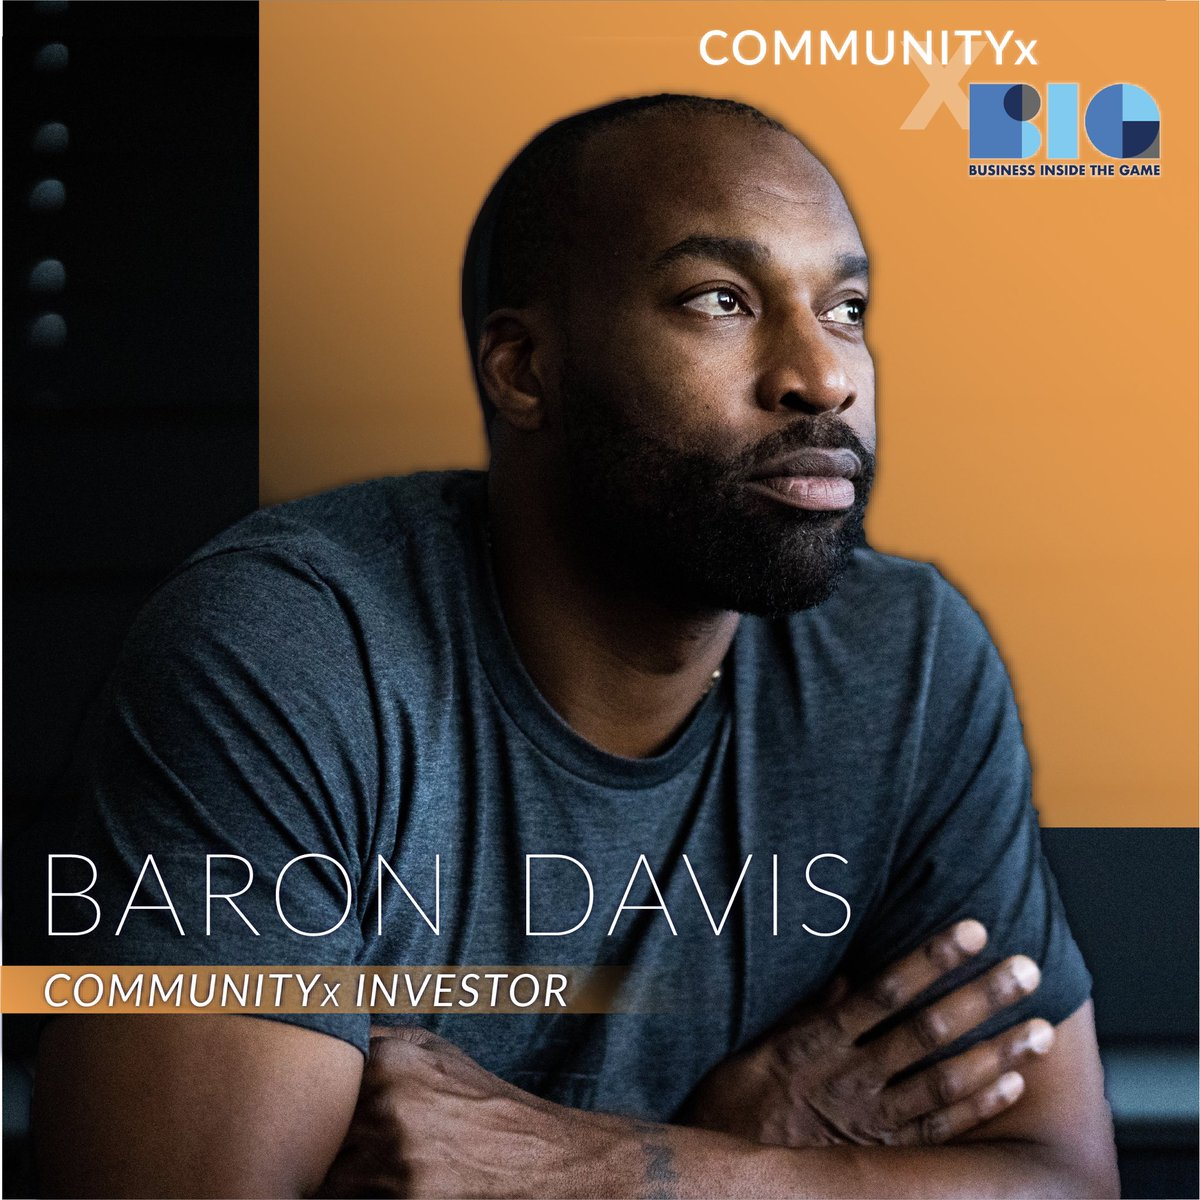 We are thrilled to announce that 2-time NBA All-Star, BIG Founder, and Venture Investor, Baron Davis, has joined our team as an Investor and Board Member. Together, we will work to create a more equitable world for all, powered by the COMMUNITYx App. DL today to #uniteforchange!